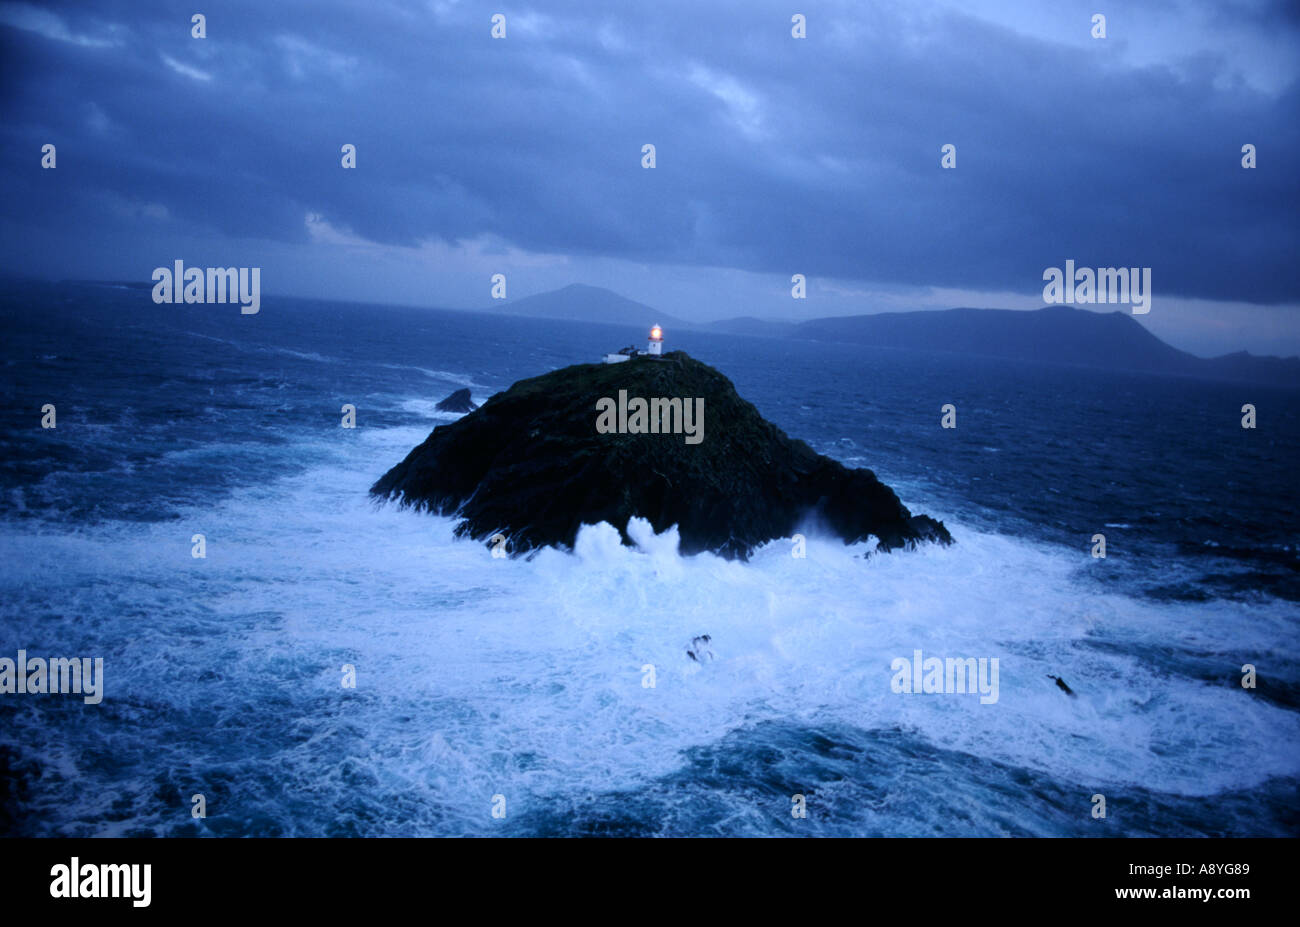 Black Rock lighthouse in gale force storm off the Atlantic coast of County Mayo, west Ireland. - Stock Image